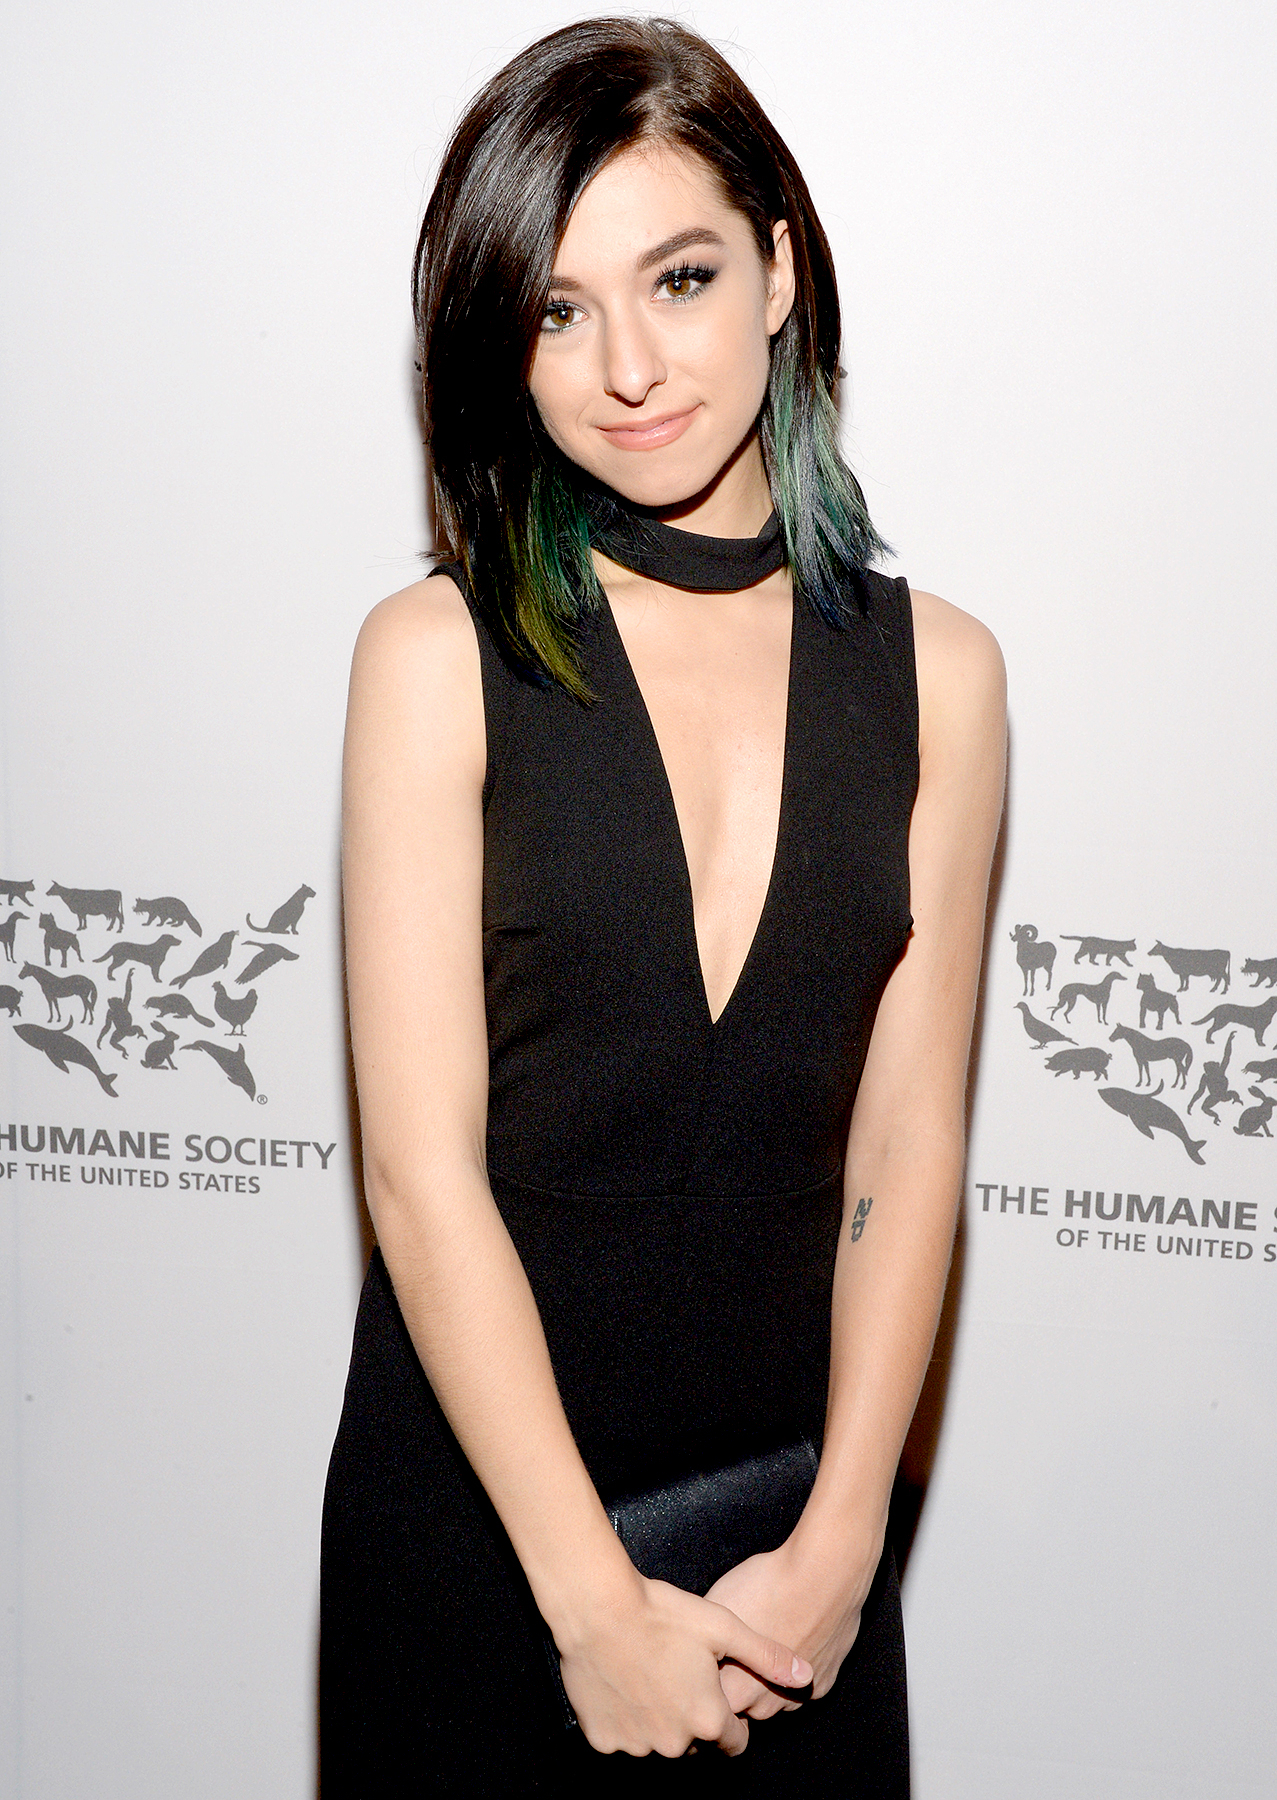 Christina Grimmie attends The Humane Society of the United States' to the Rescue Gala at Paramount Studios on May 7, 2016 in Hollywood.